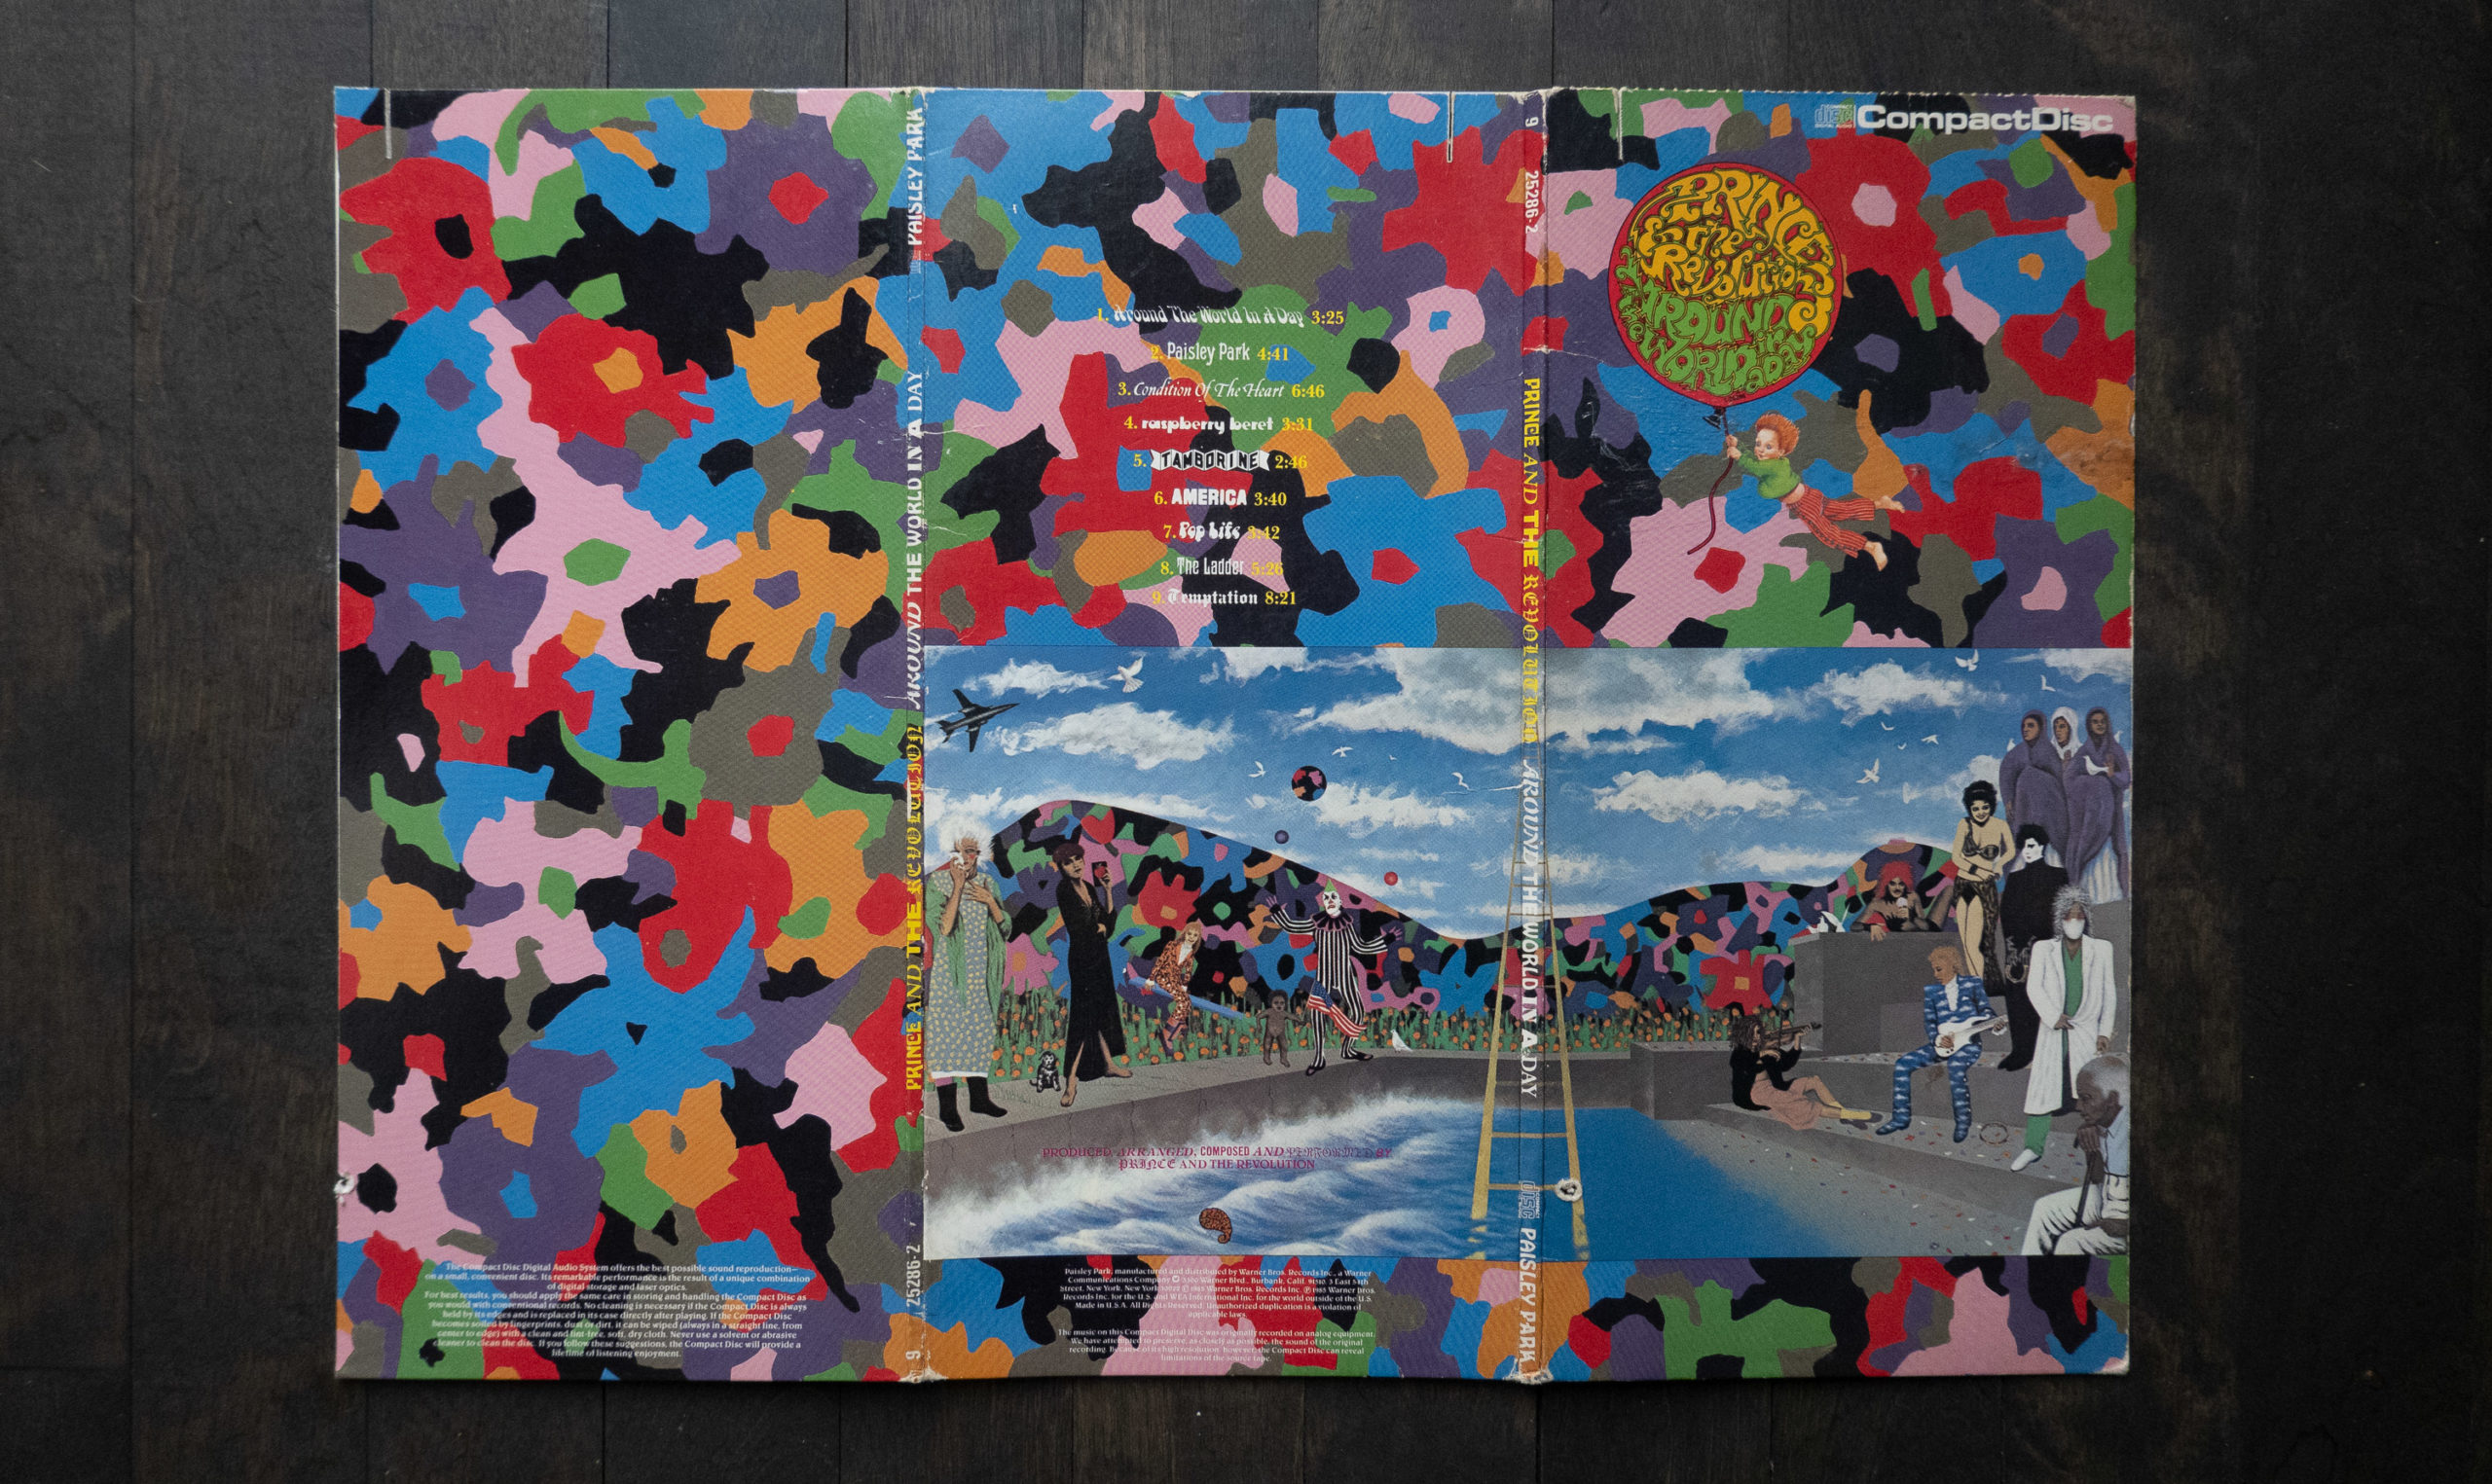 Around the World in a Day CD longbox